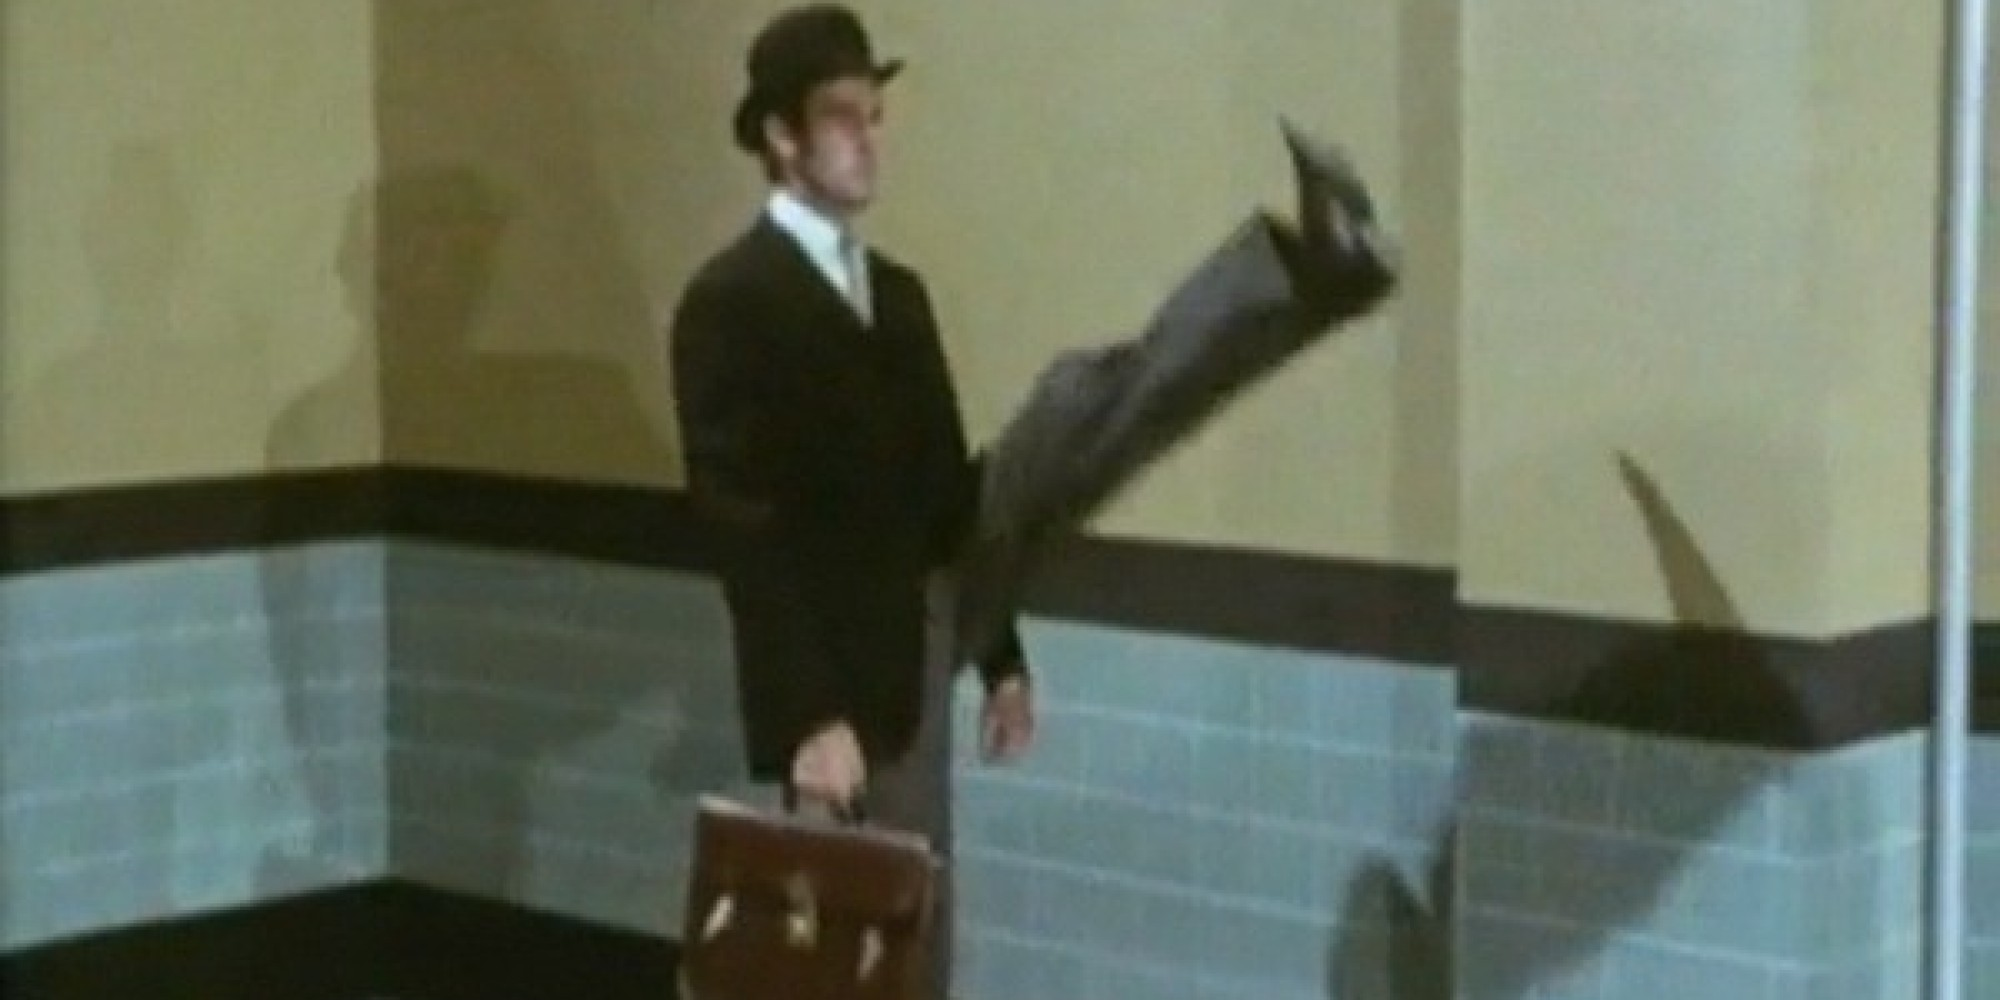 John cleese s ministry of silly walks not on the bill the